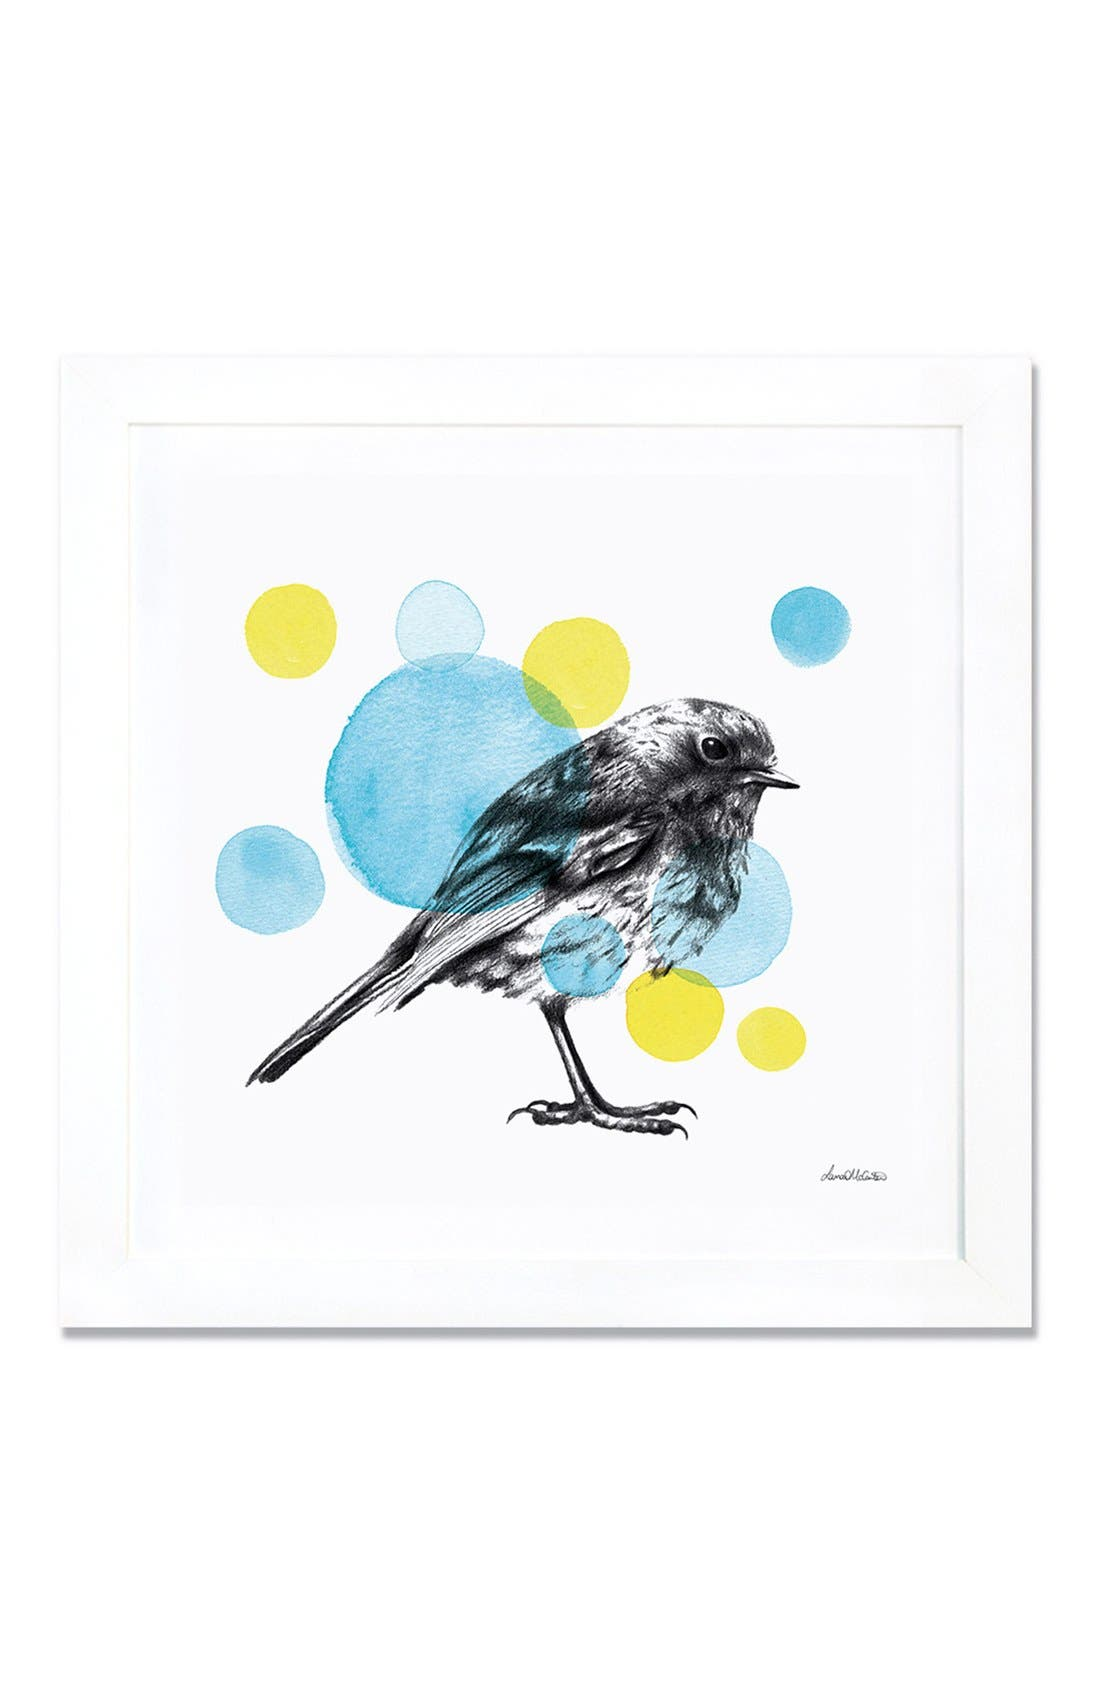 ICANVAS 'Sketchbook - Bird' Giclée Print Framed Canvas